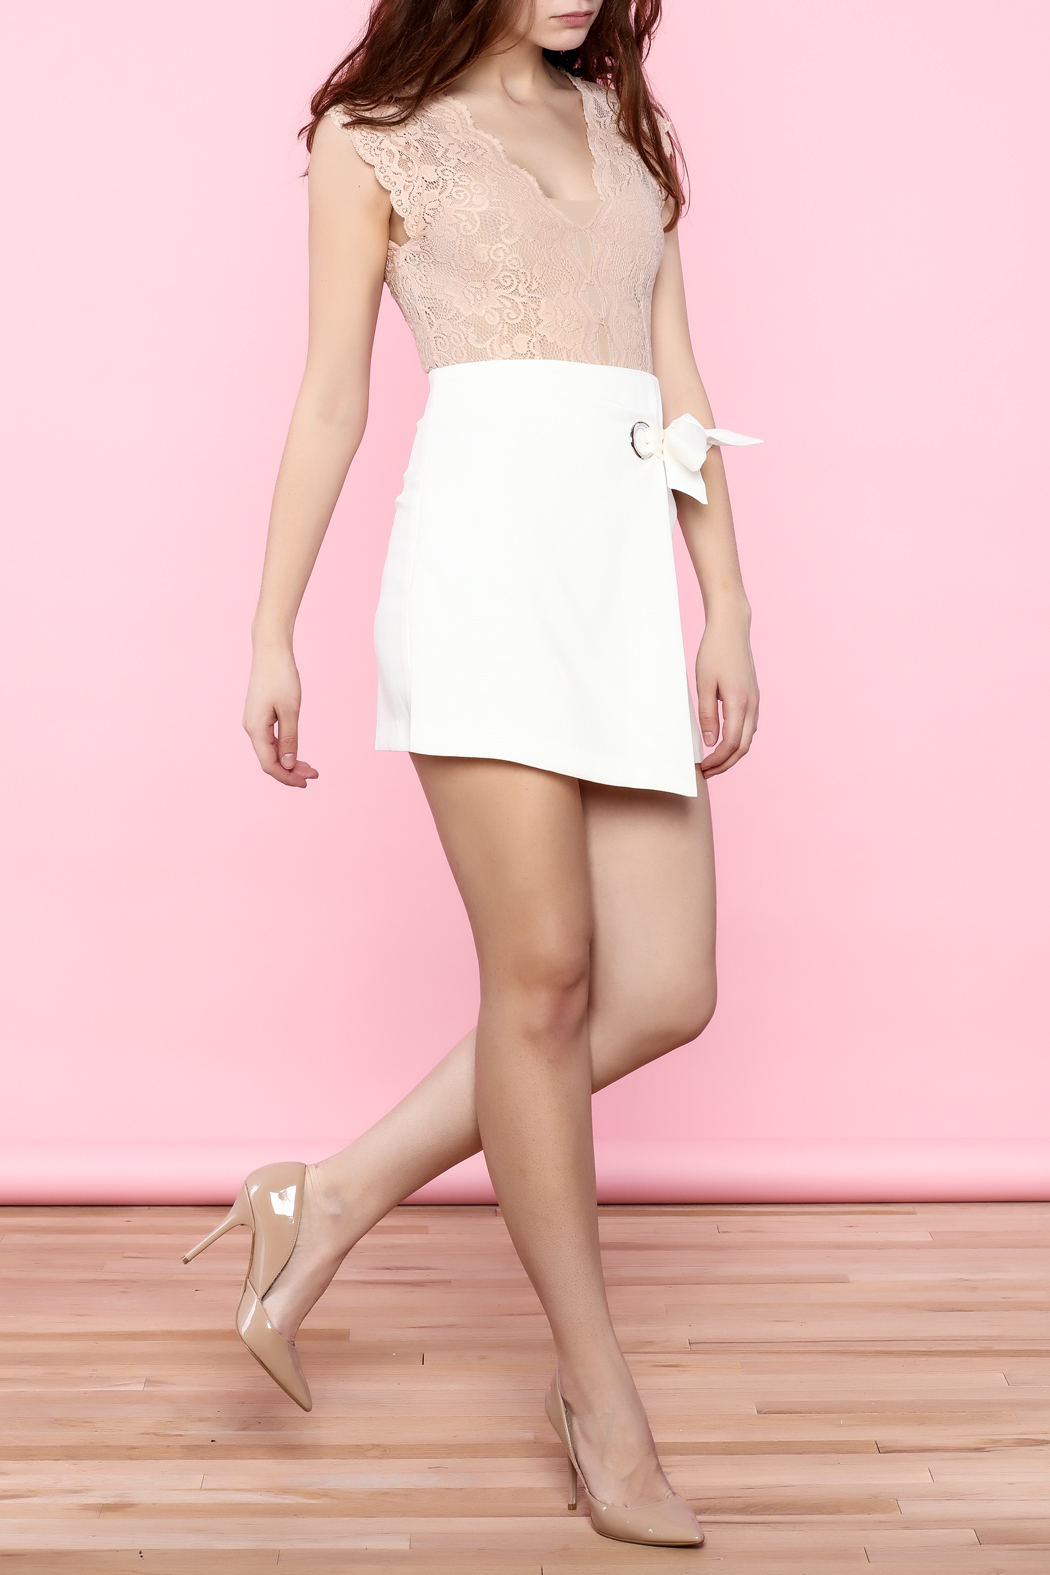 L'atiste Pink Lace Bodysuit from Texas by Chic'tique ...